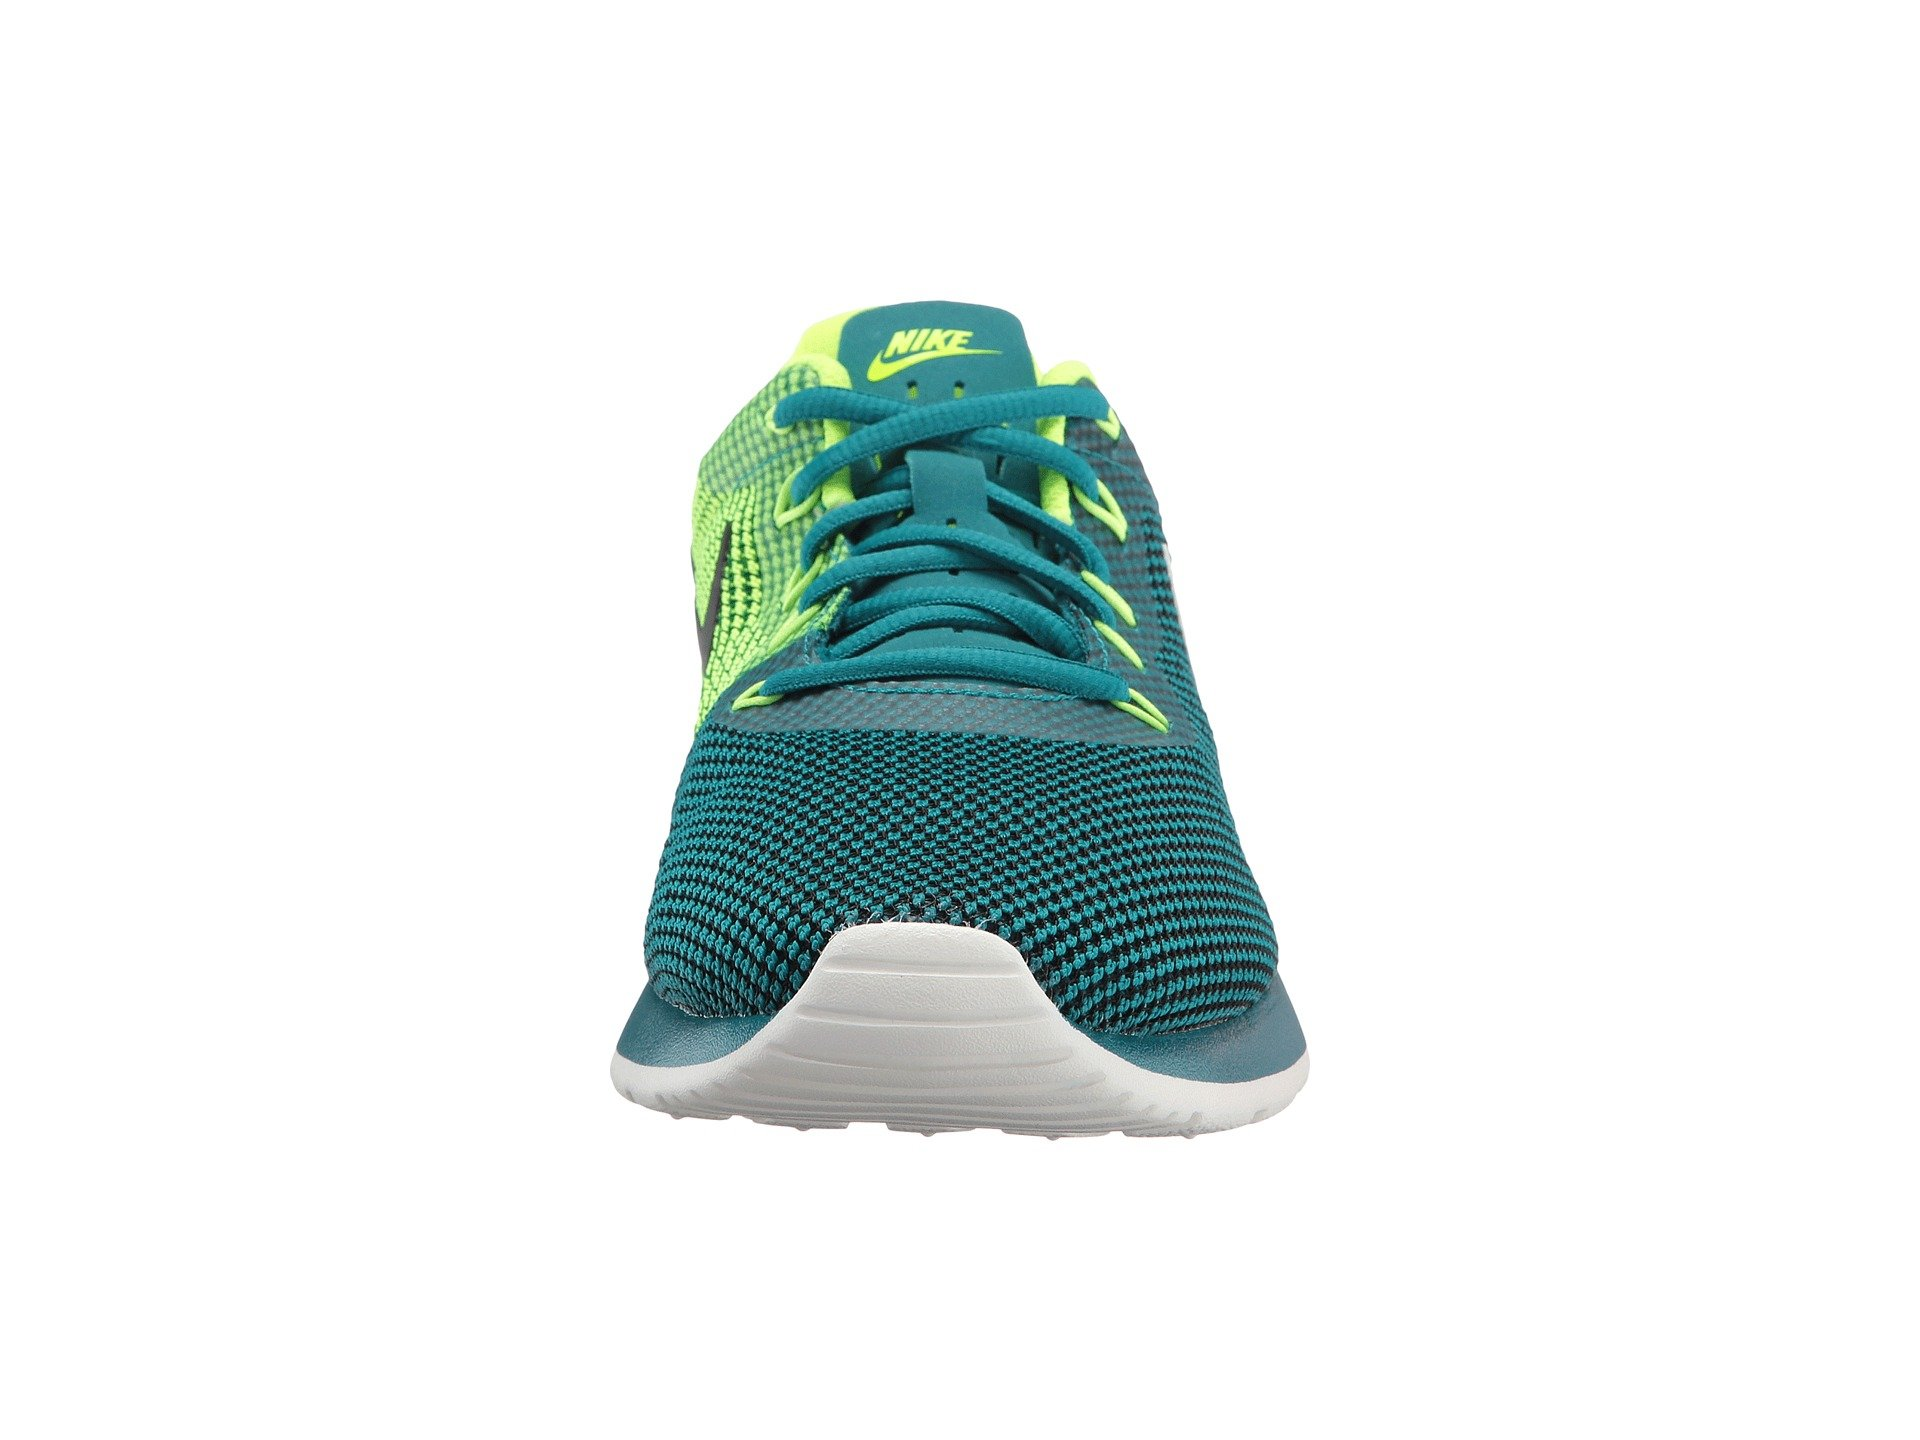 best shoes on; nike tanjun racer at zappos